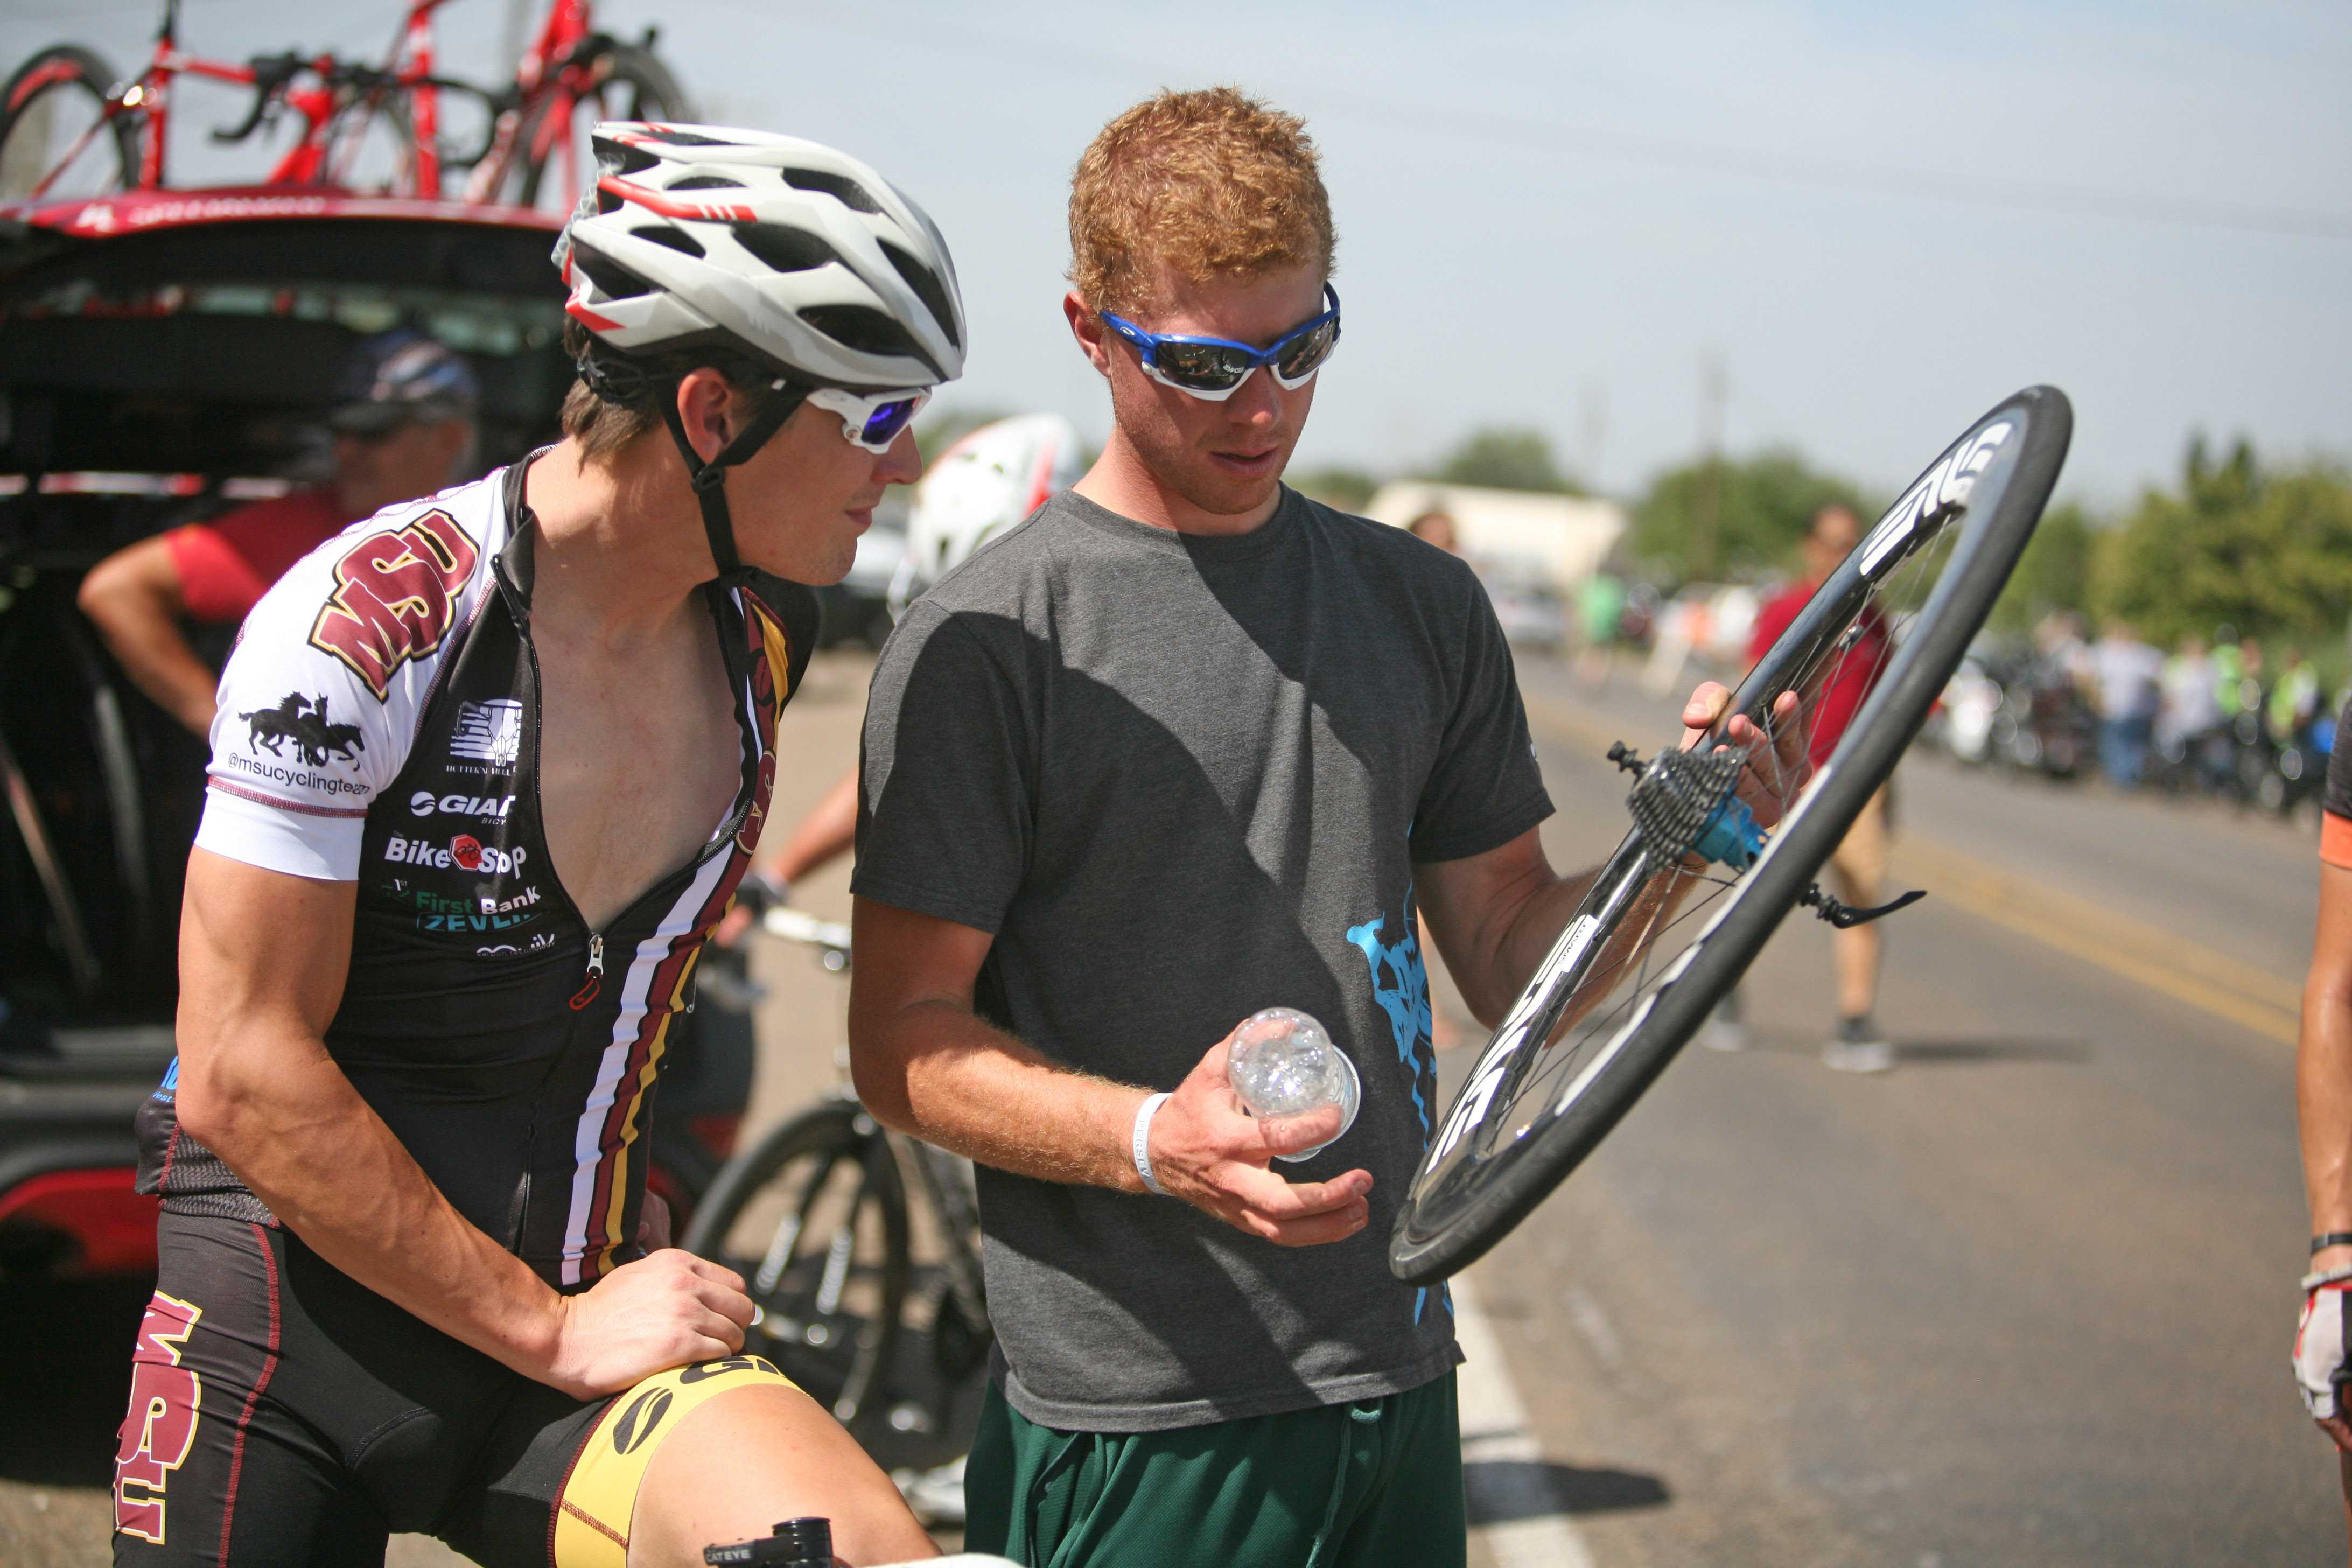 Cory Scott and Sam Croft look over a tire at the finish line of the 100-mile Hotter'N Hell race in Wichita Falls, Texas. Photo by Bradley Wilson